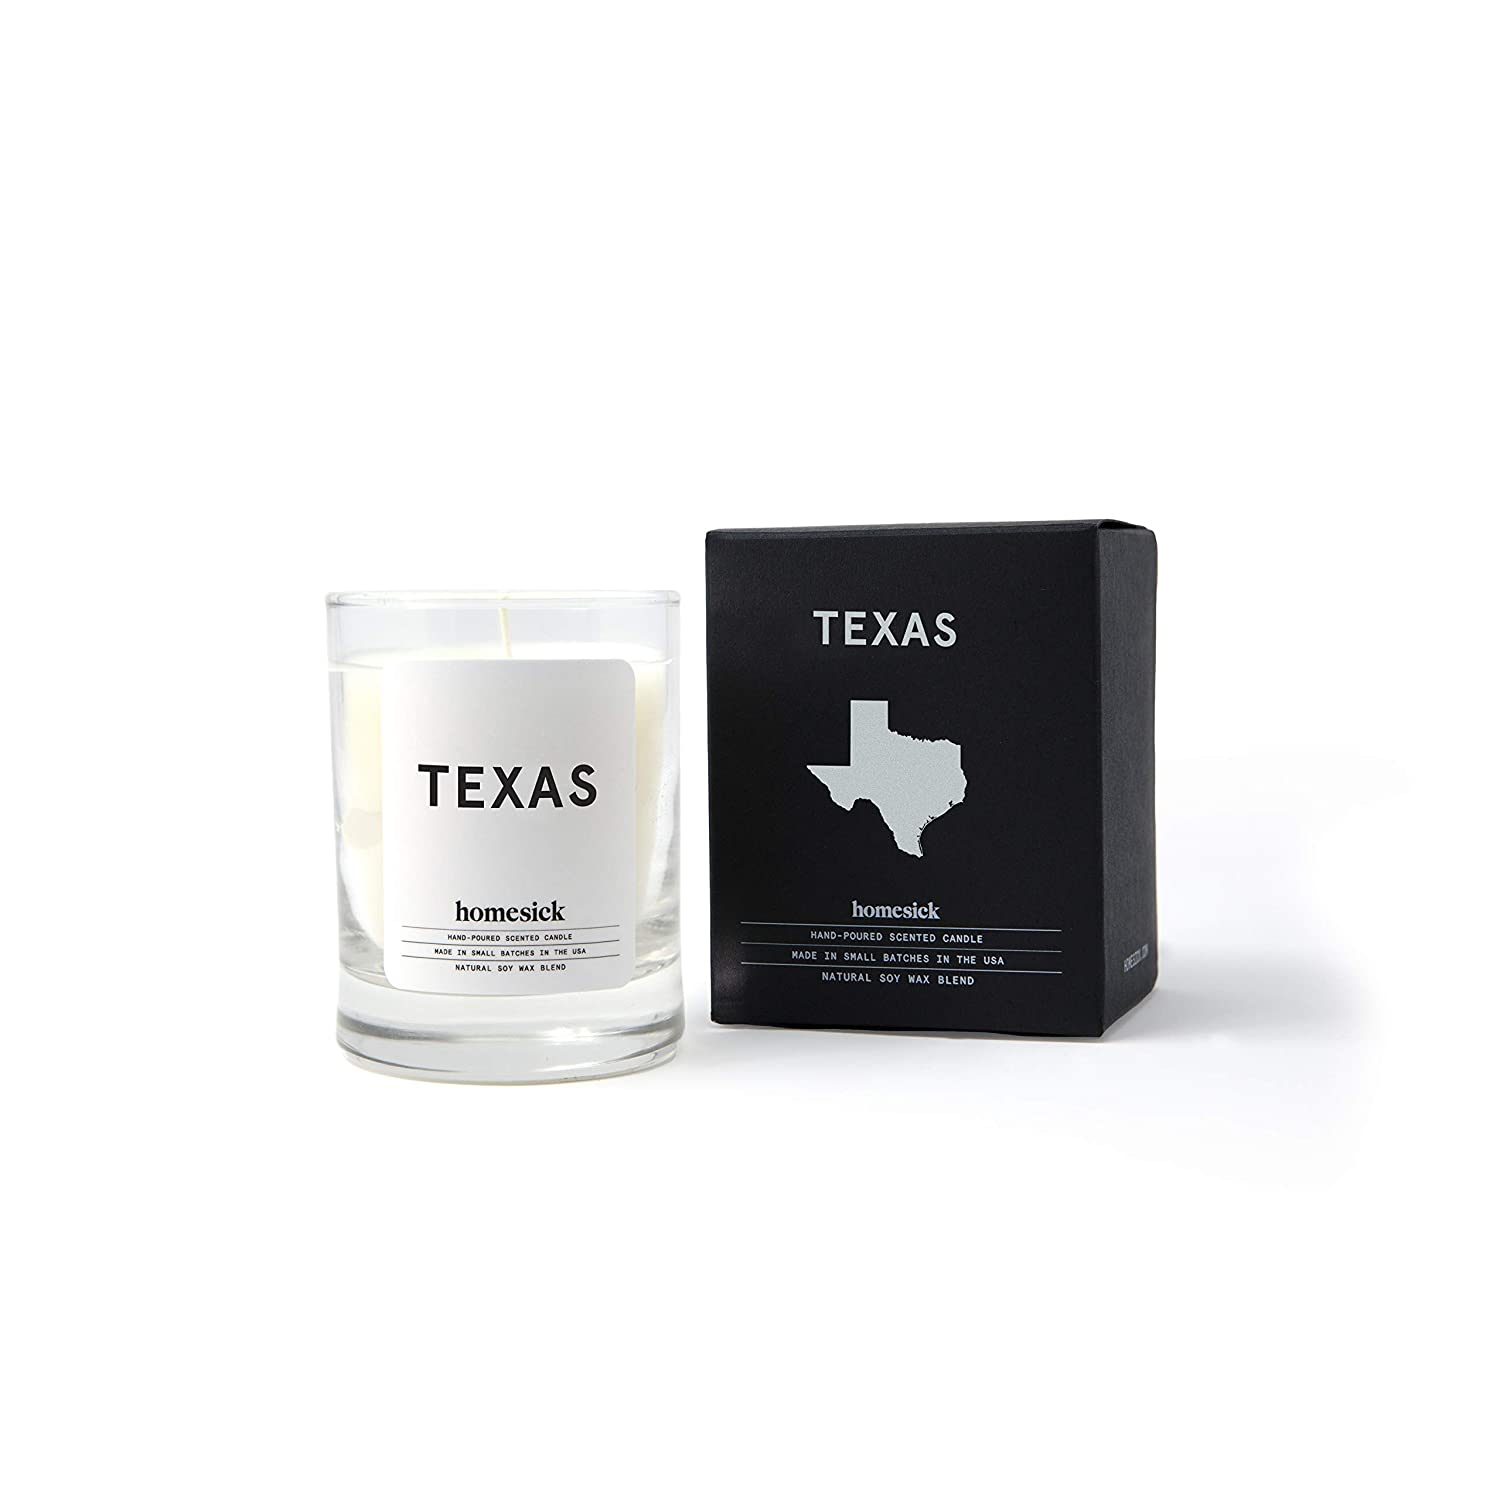 Homesick Mini Scented Candle (10 to 12 hr Burn Time) Home, 1.5 oz, Texas